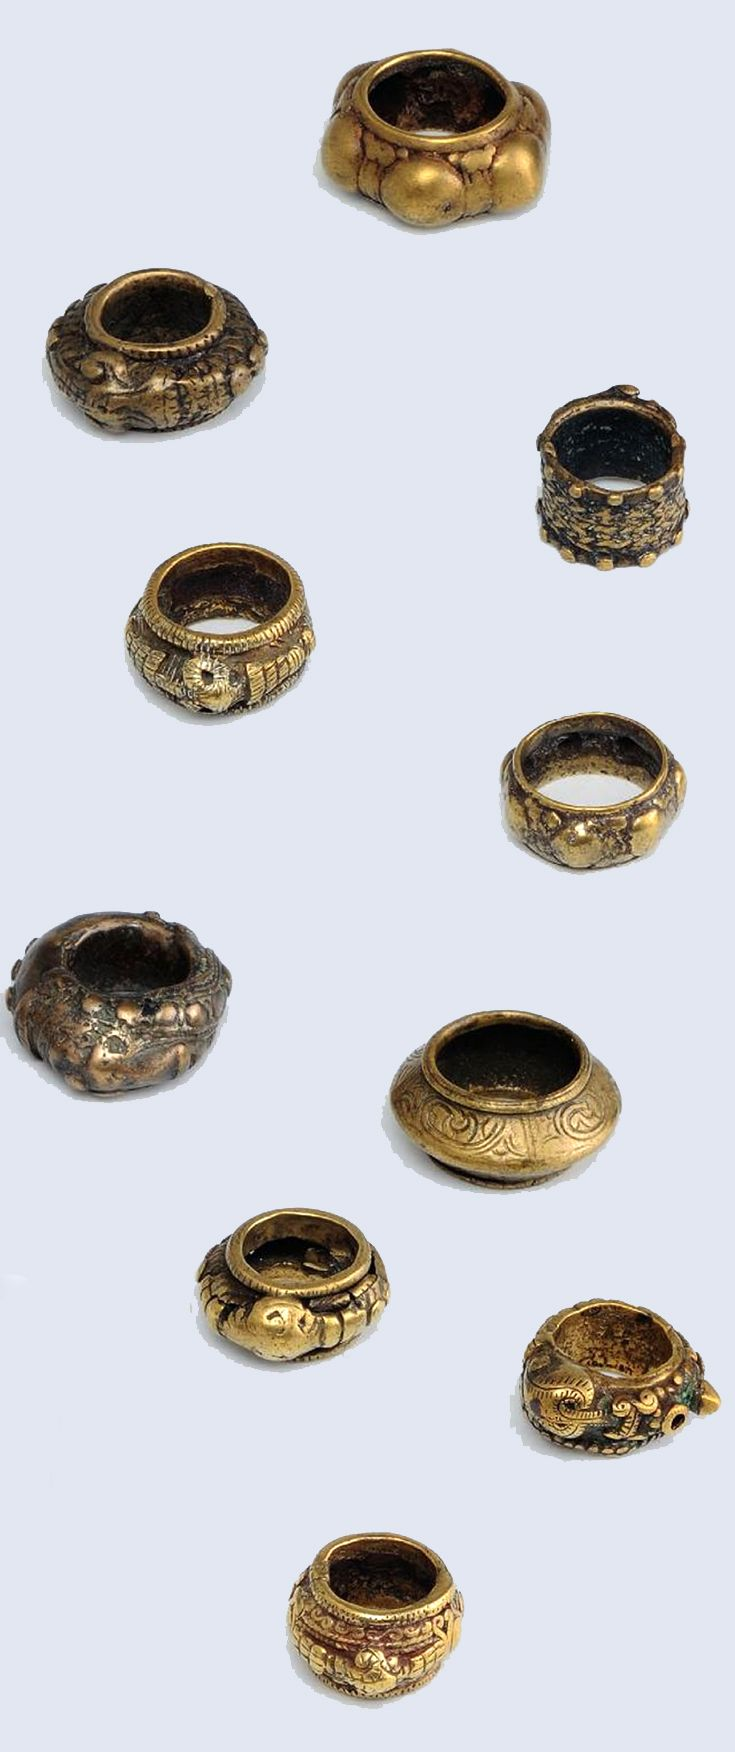 Indonesia ~ Batak Toba | Ten men's rings; bronze | 19th century or earlier. ||| Source; Ethnic Jewellery from Indonesia: Continuity and Evolution. Bruce W Carpenter. Pg 63